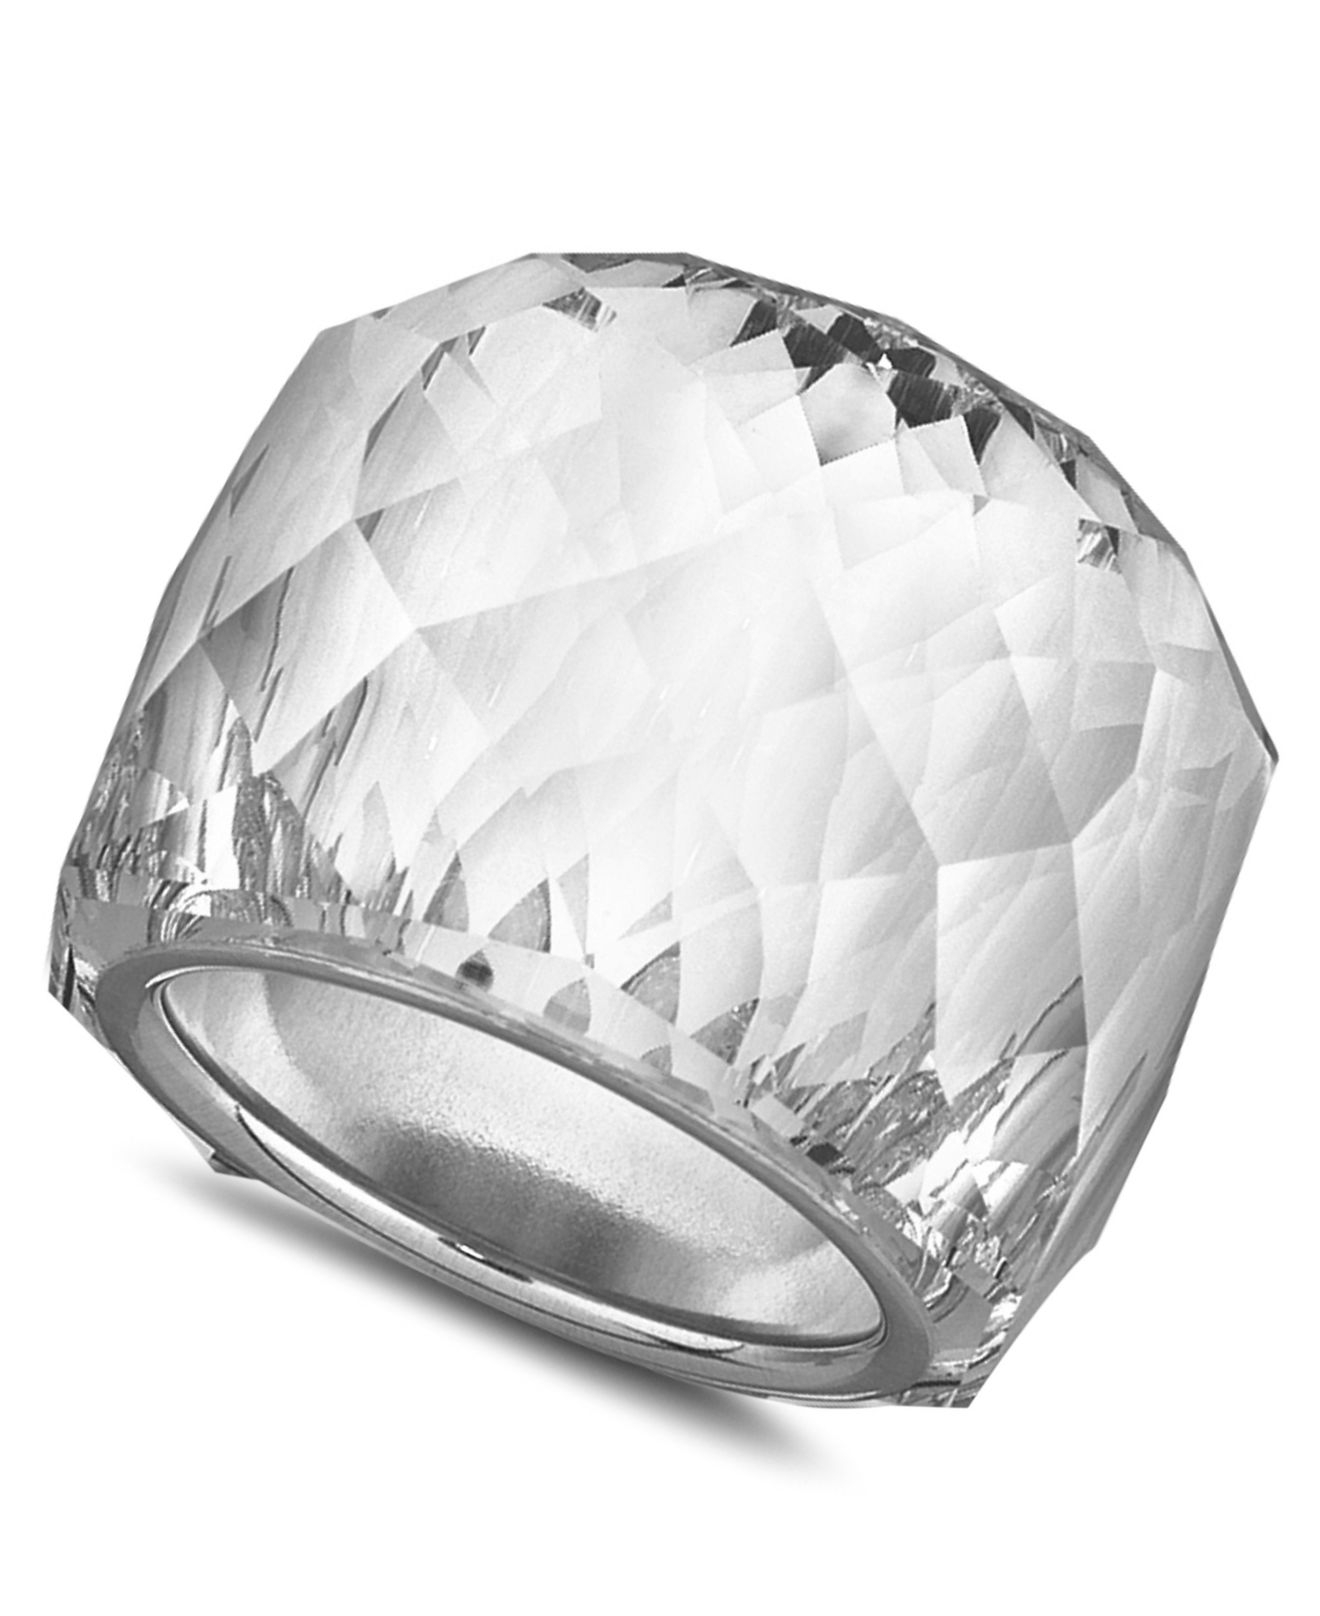 f756ba98067d81 Lyst - Swarovski Nirvana Ring in Metallic